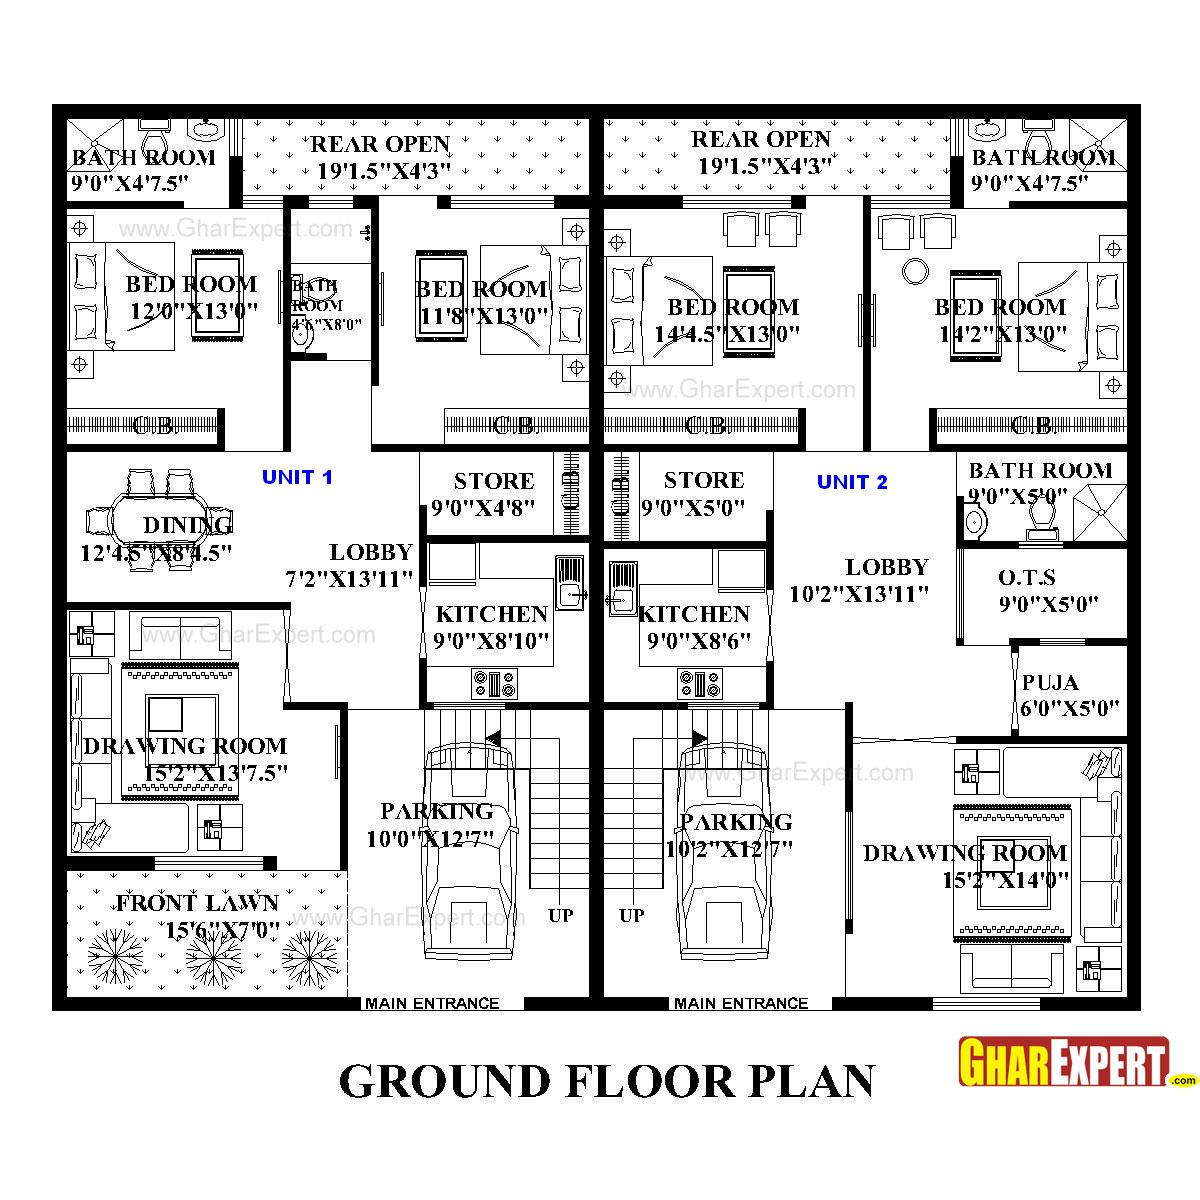 apartment plan for 75 feet by 58 feet plot plot size 483 square house plan for 60 feet by 50 feet plot plot size 333 square yards